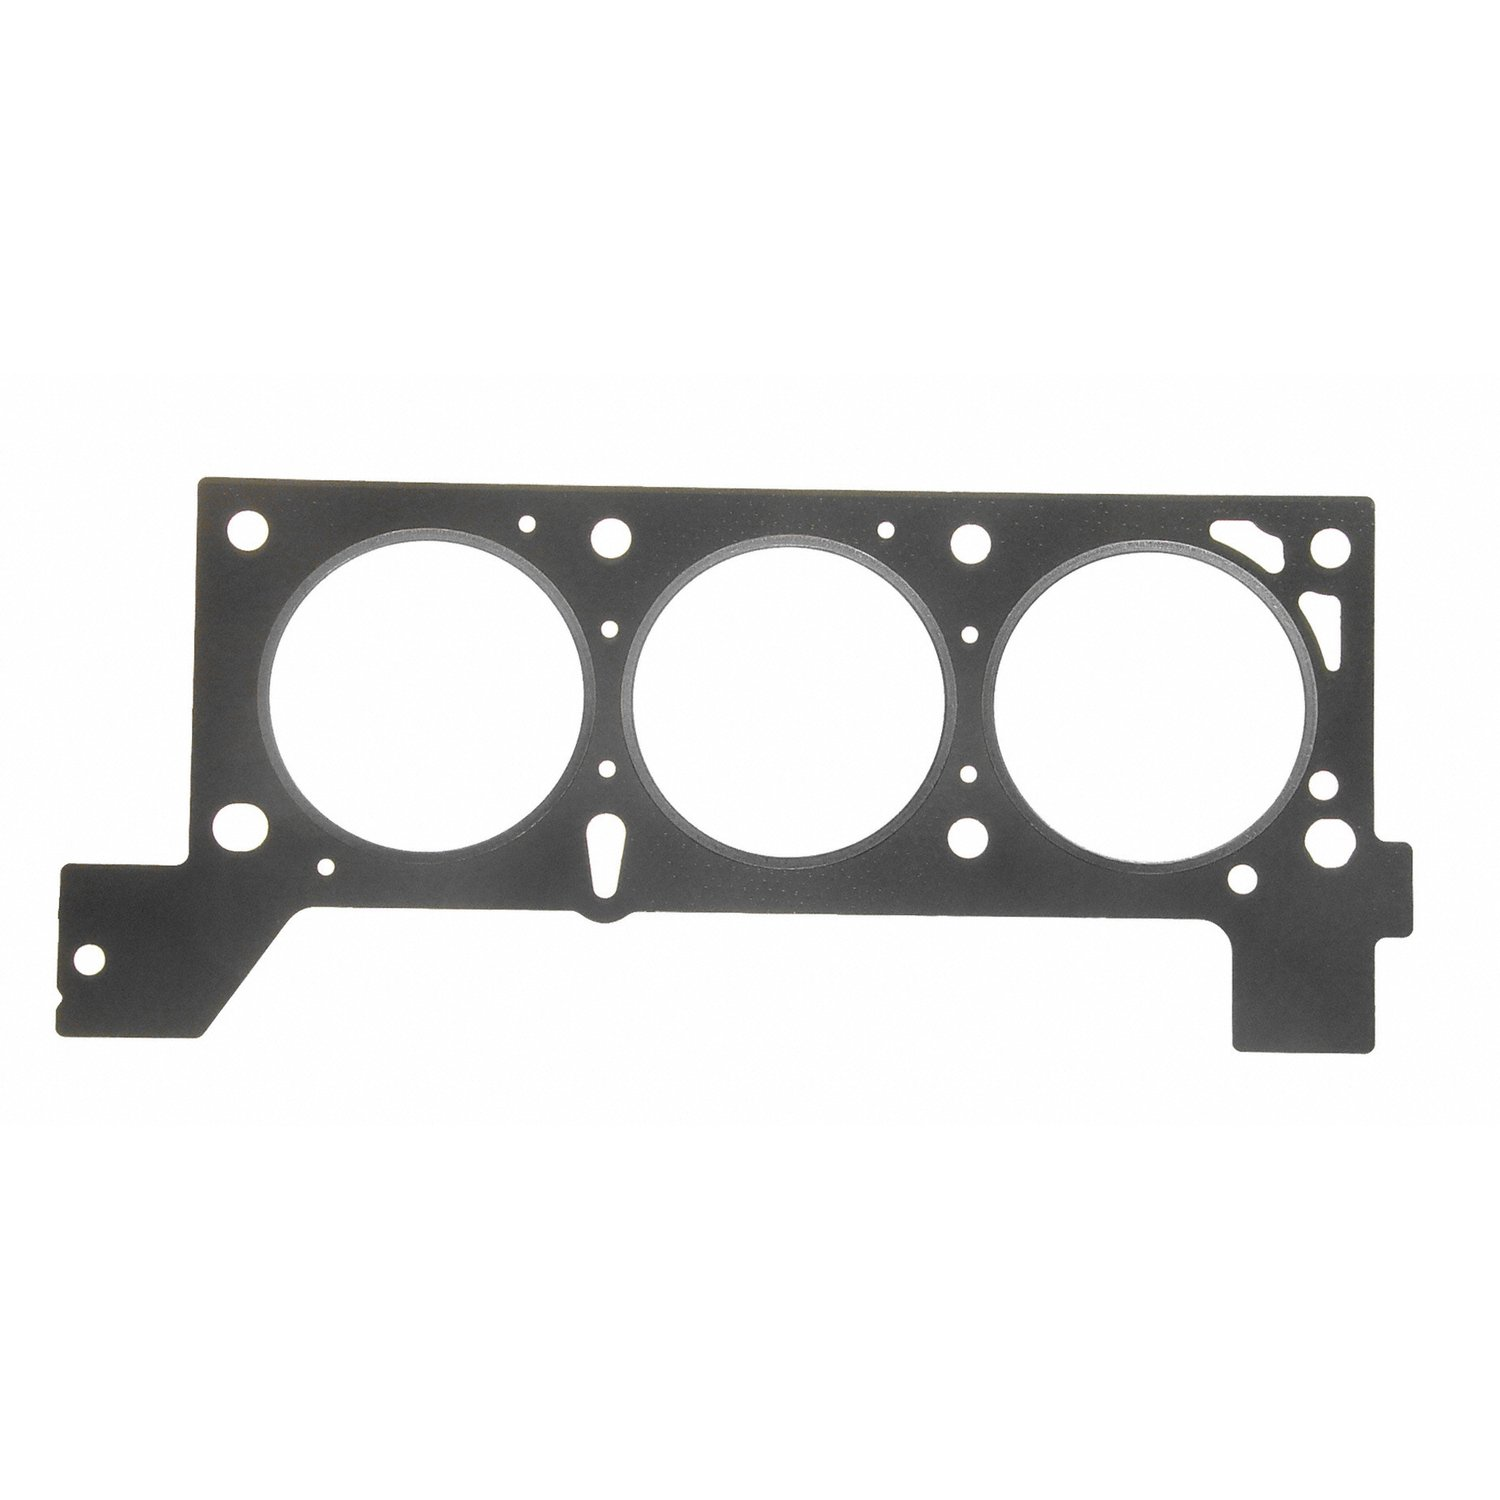 hight resolution of 1994 chrysler town country engine cylinder head gasket fp 9535 pt